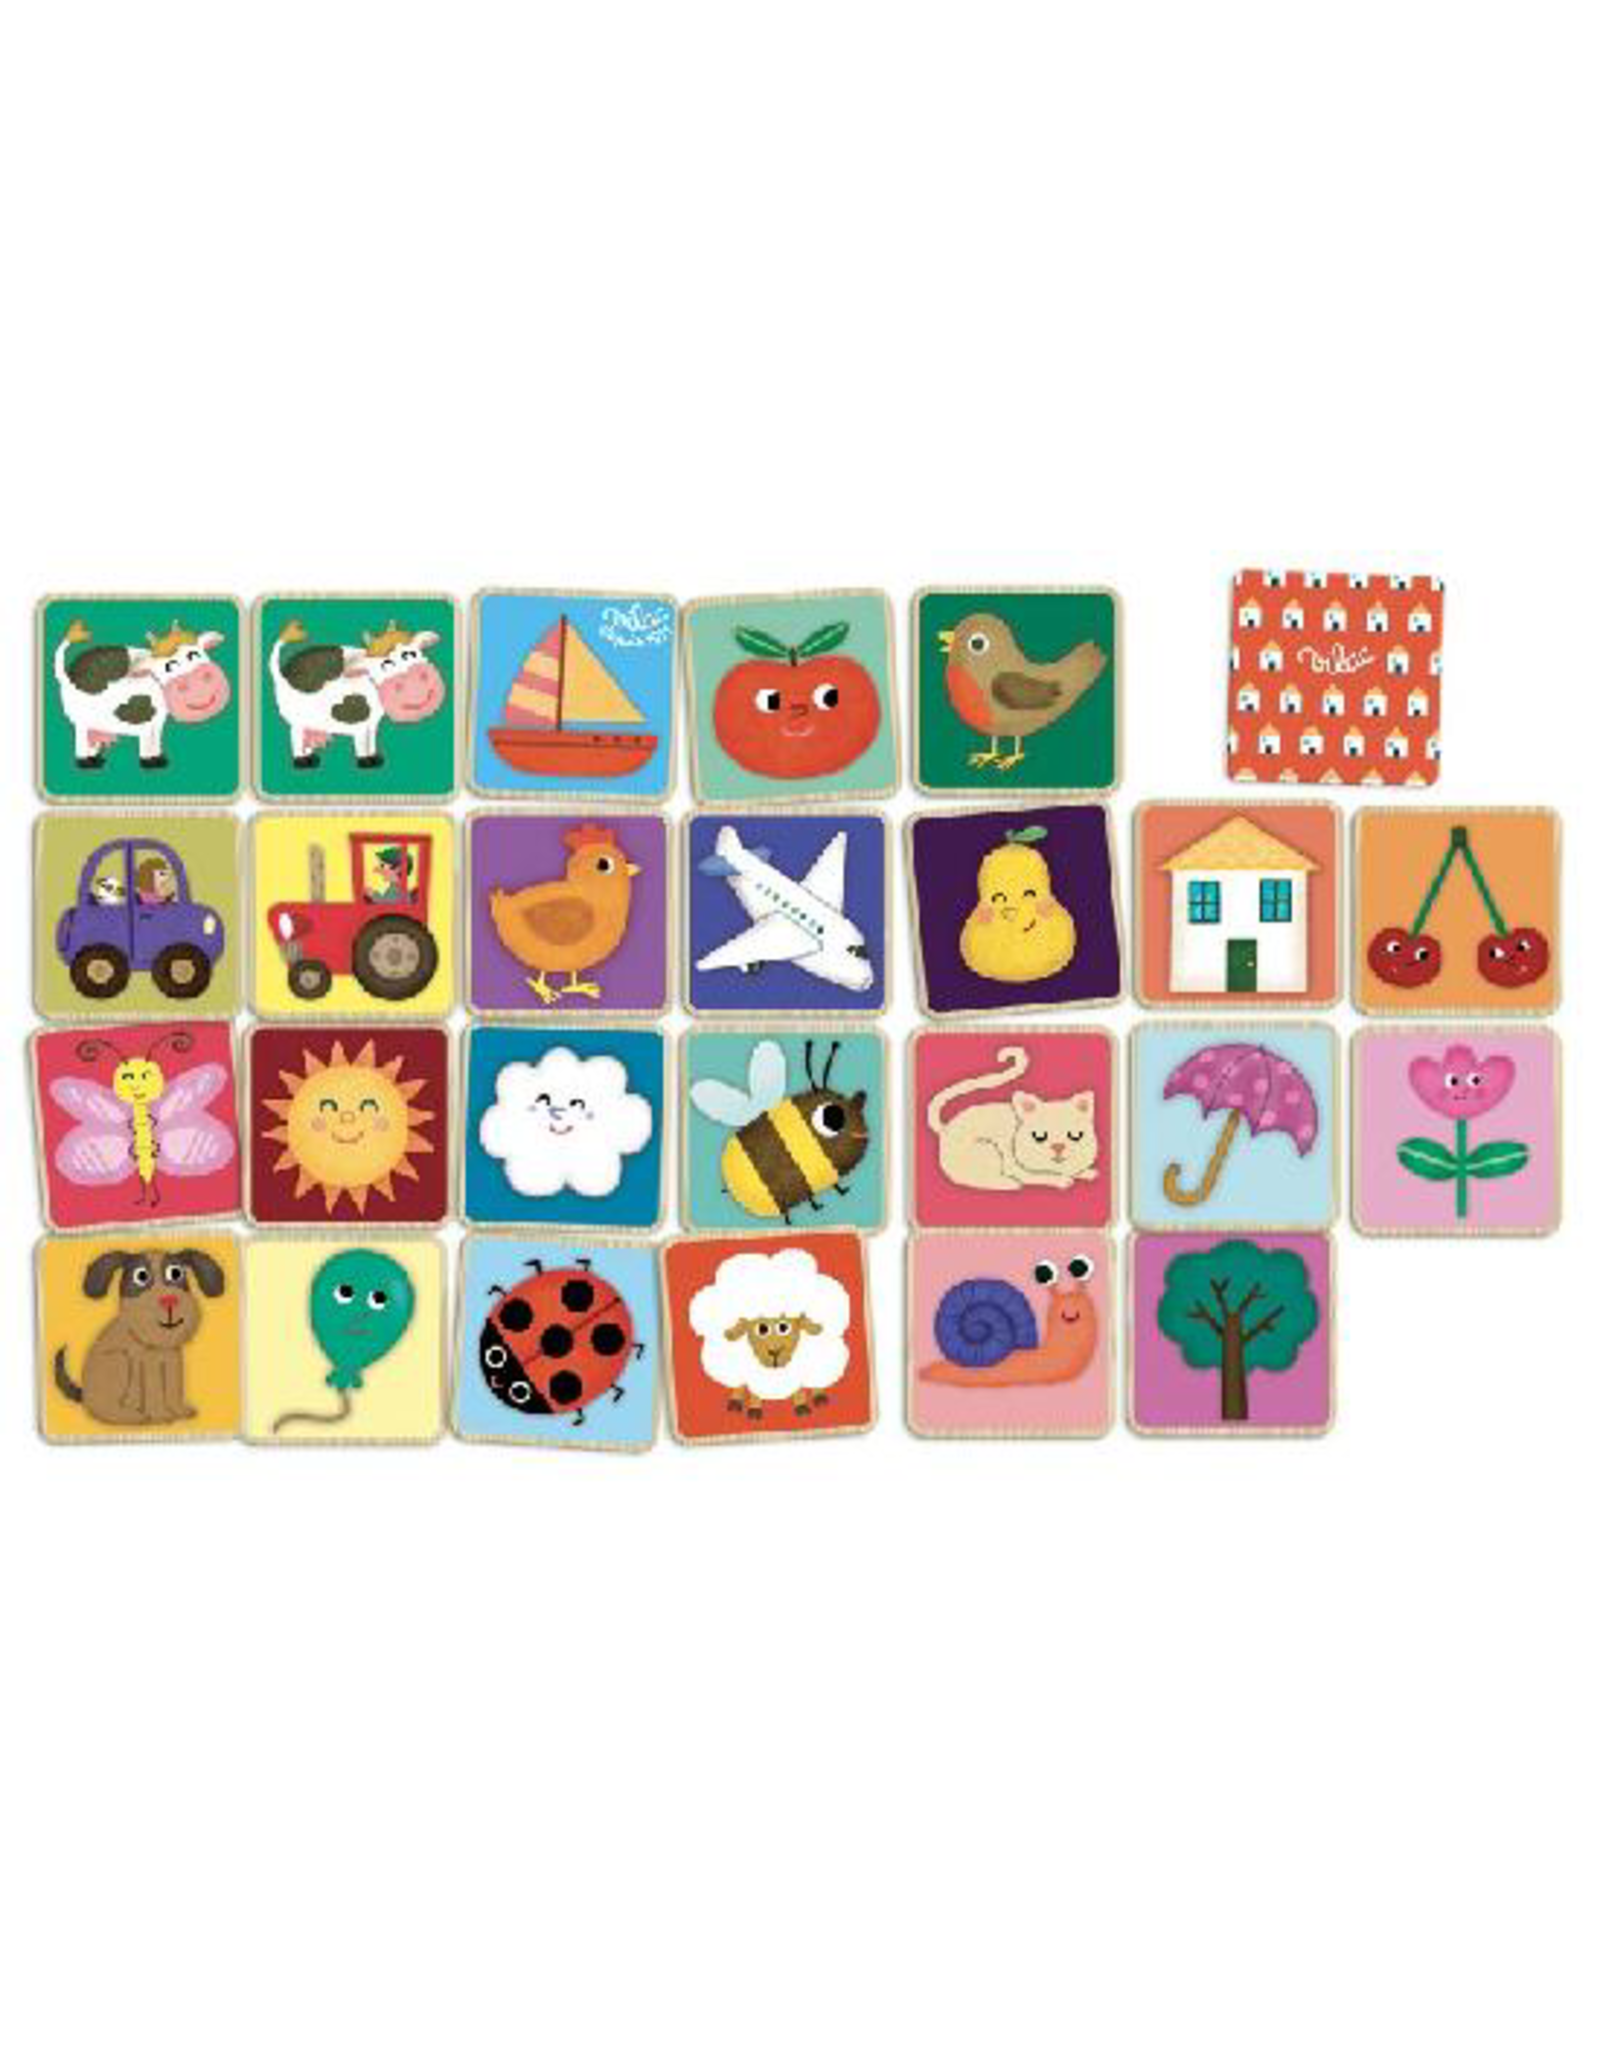 Vilac Classic Wooden Memory Game